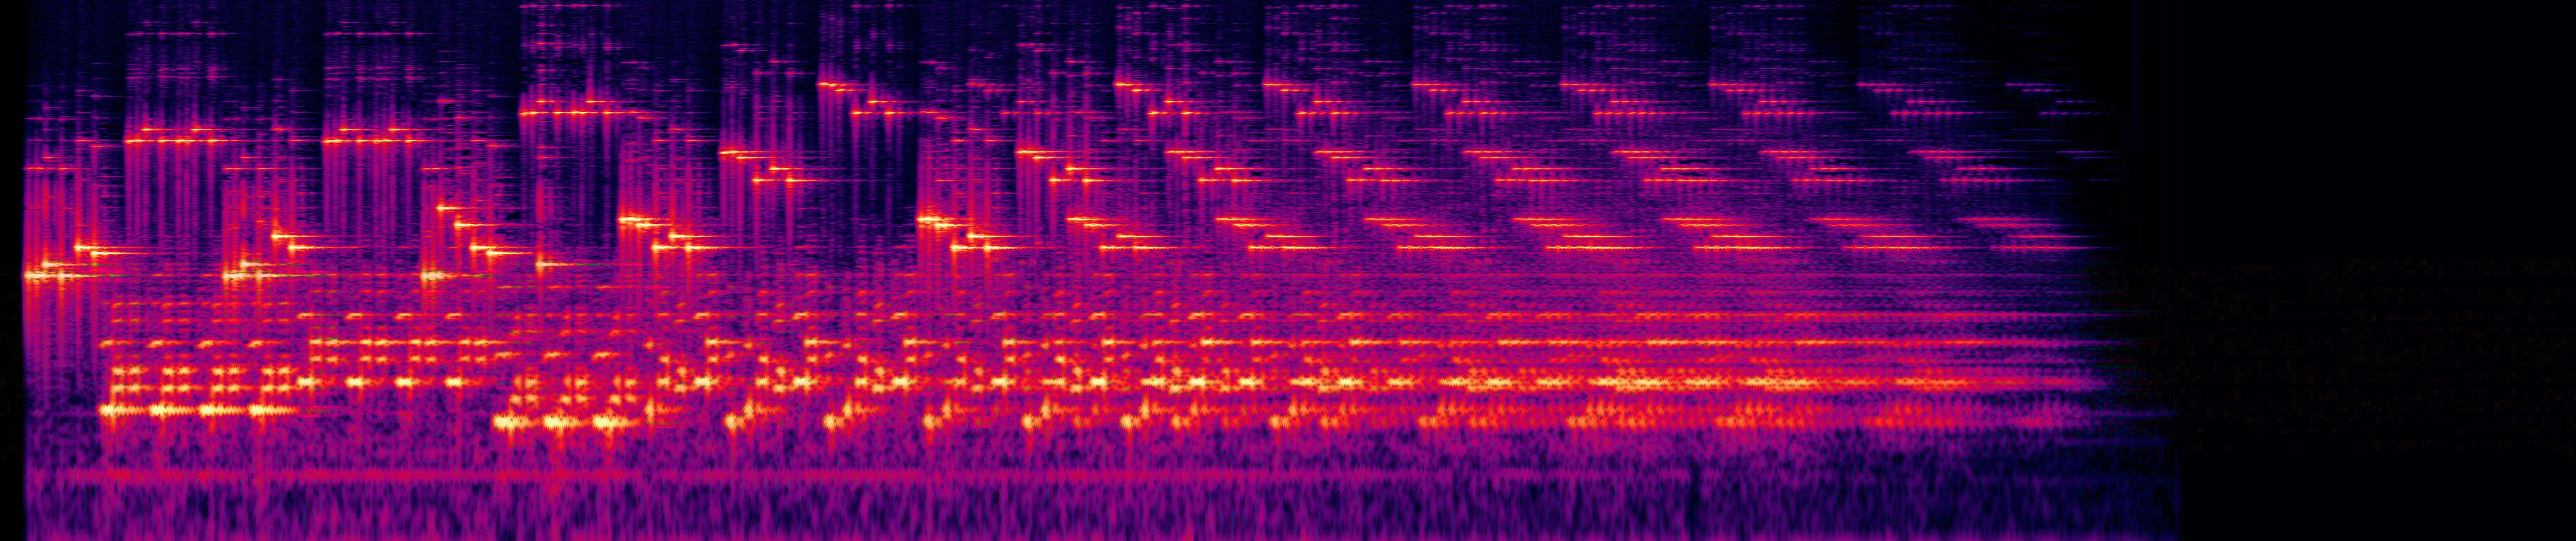 Happy Birthday - Spectrogram.jpg